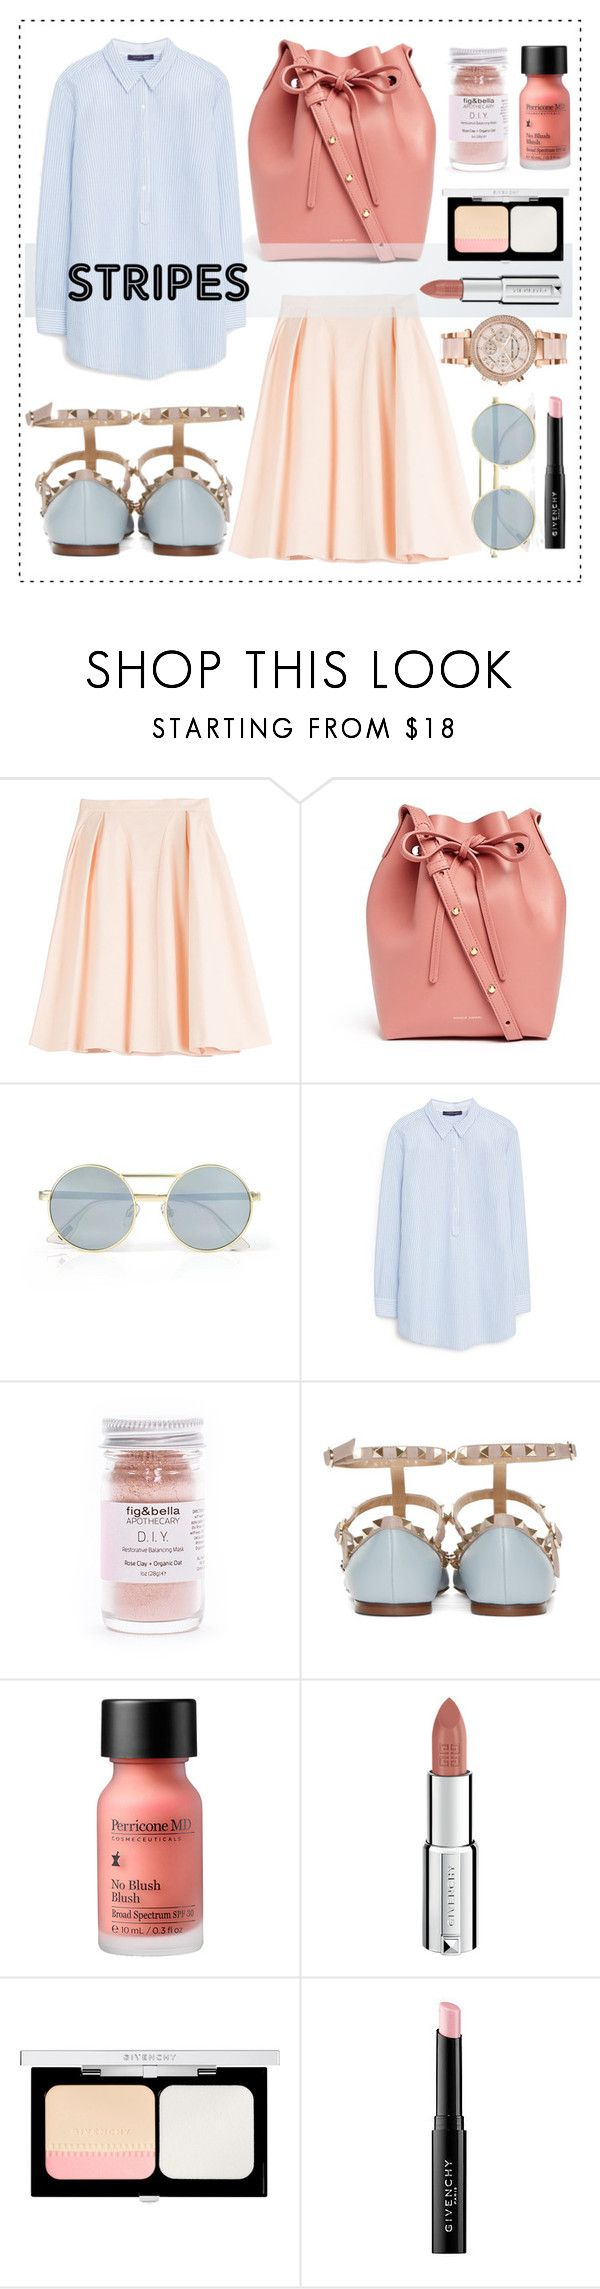 """One Direction: Striped Shirts"" by alaria ❤ liked on Polyvore featuring mode, Tara Jarmon, Mansur Gavriel, Le Specs, MANGO, Perricone MD, Givenchy, Michael Kors et stripes"